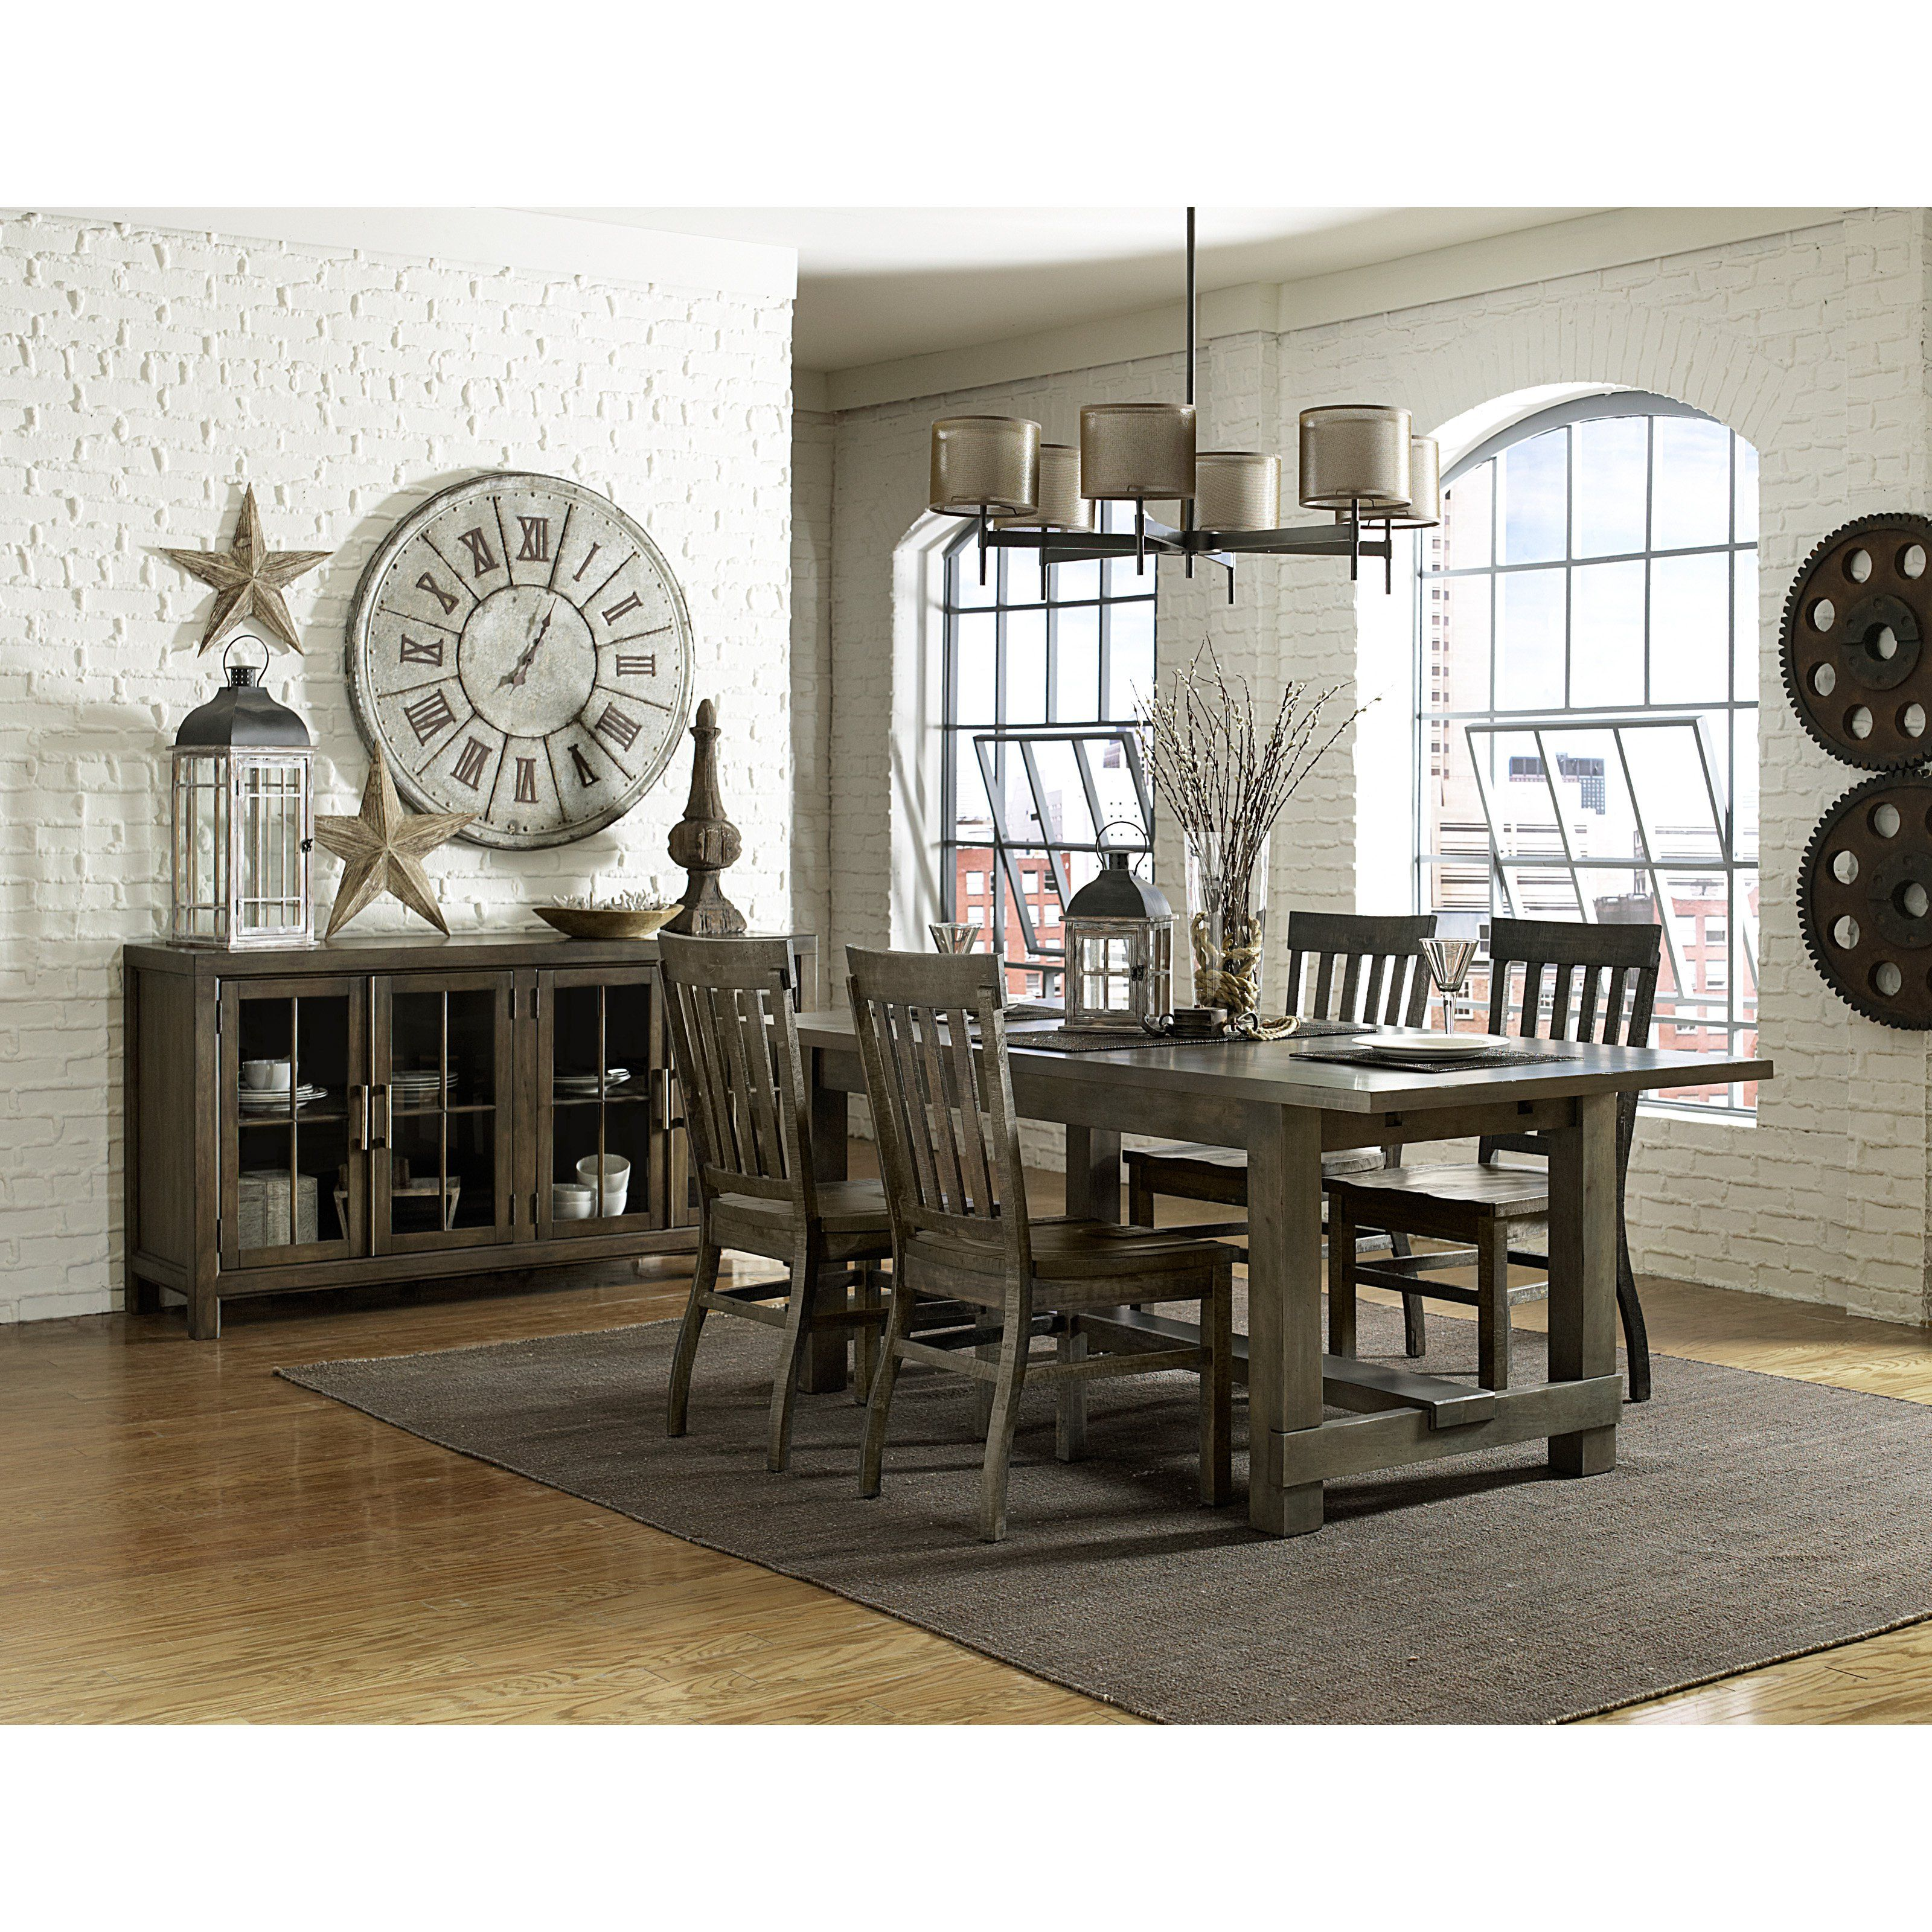 Magnussen Karlin Wood Rectangular Dining Set With Wood Chairs   Traditional  Dining Style Looks As Timely As Ever In The Magnussen Karlin Wood  Rectangular ...